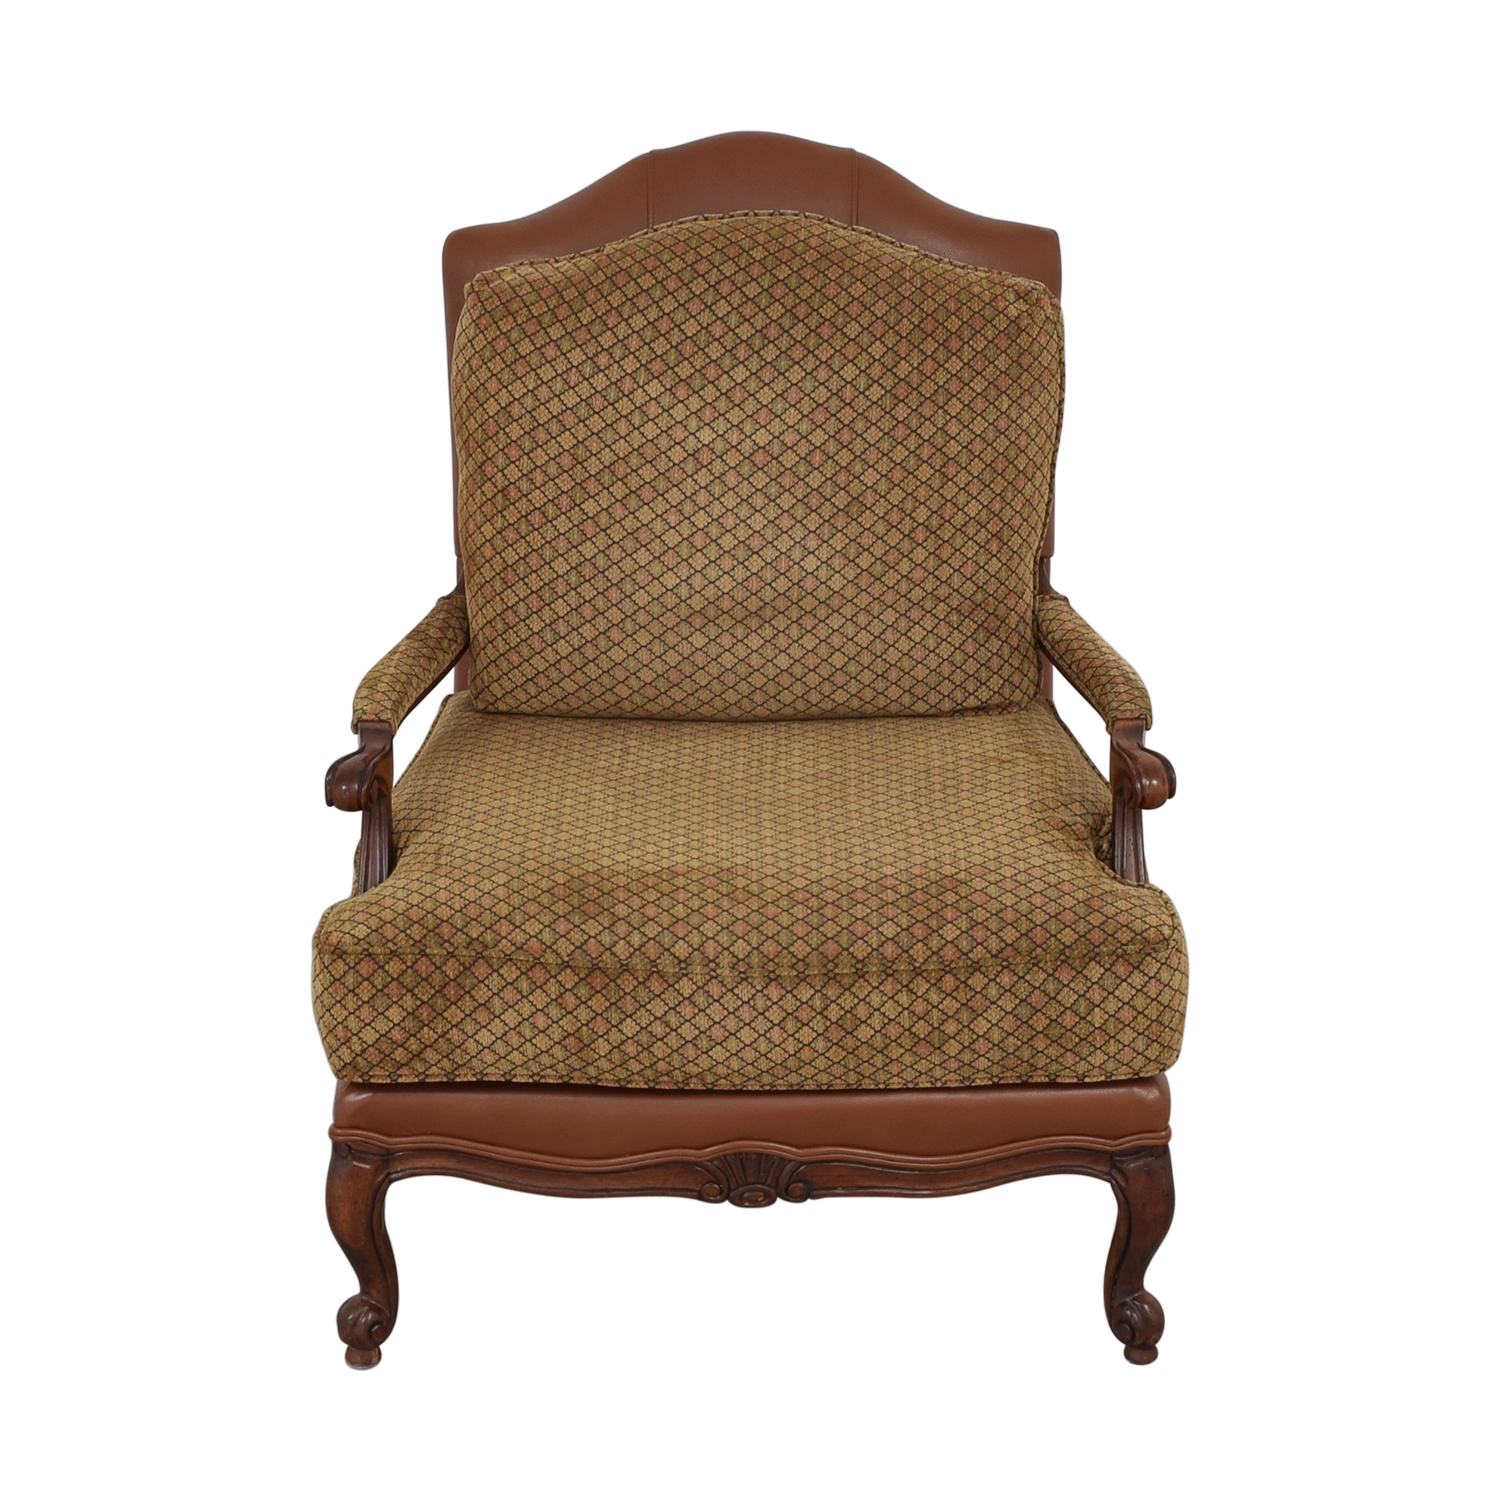 Ethan Allen Ethan Allen Upholstered Accent Chair for sale